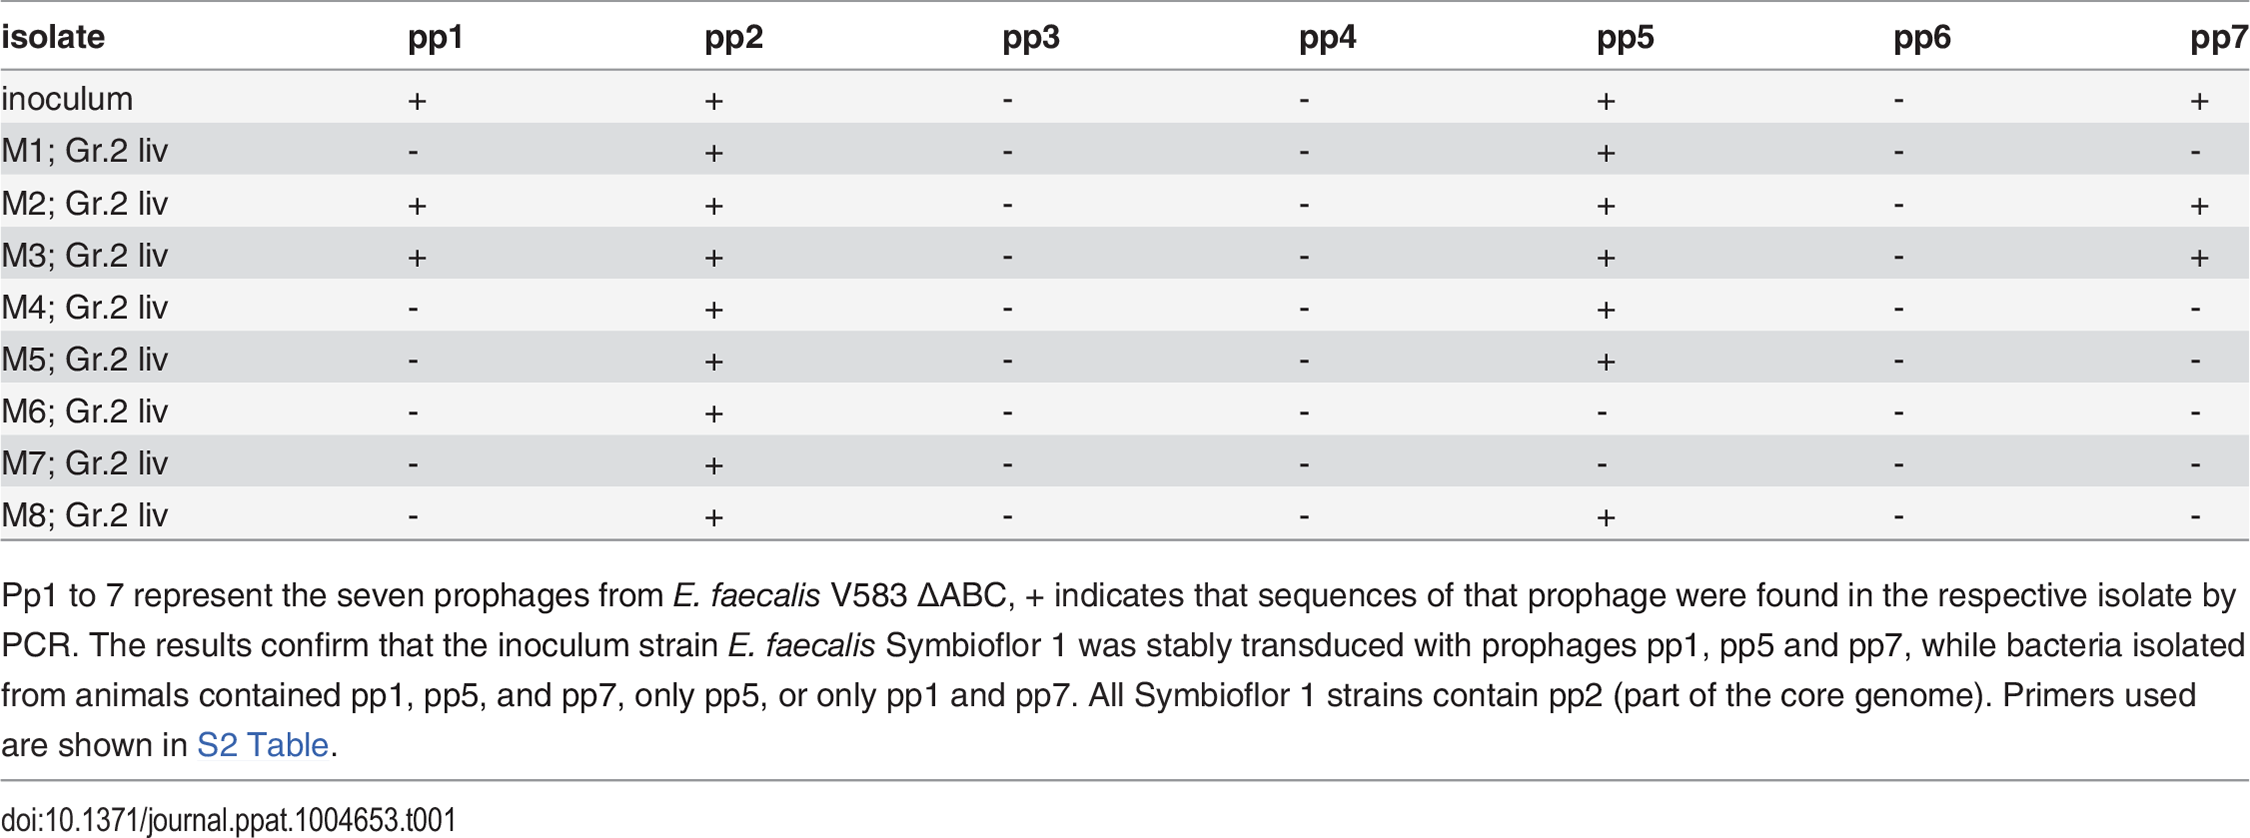 PCR results validating the presence or absence of phage sequences in the original <i>E. faecalis</i> Symbioflor 1, polylysogenic Symbioflor 1, and bacterial isolates from animals infected with polylysogenic Symbioflor 1.